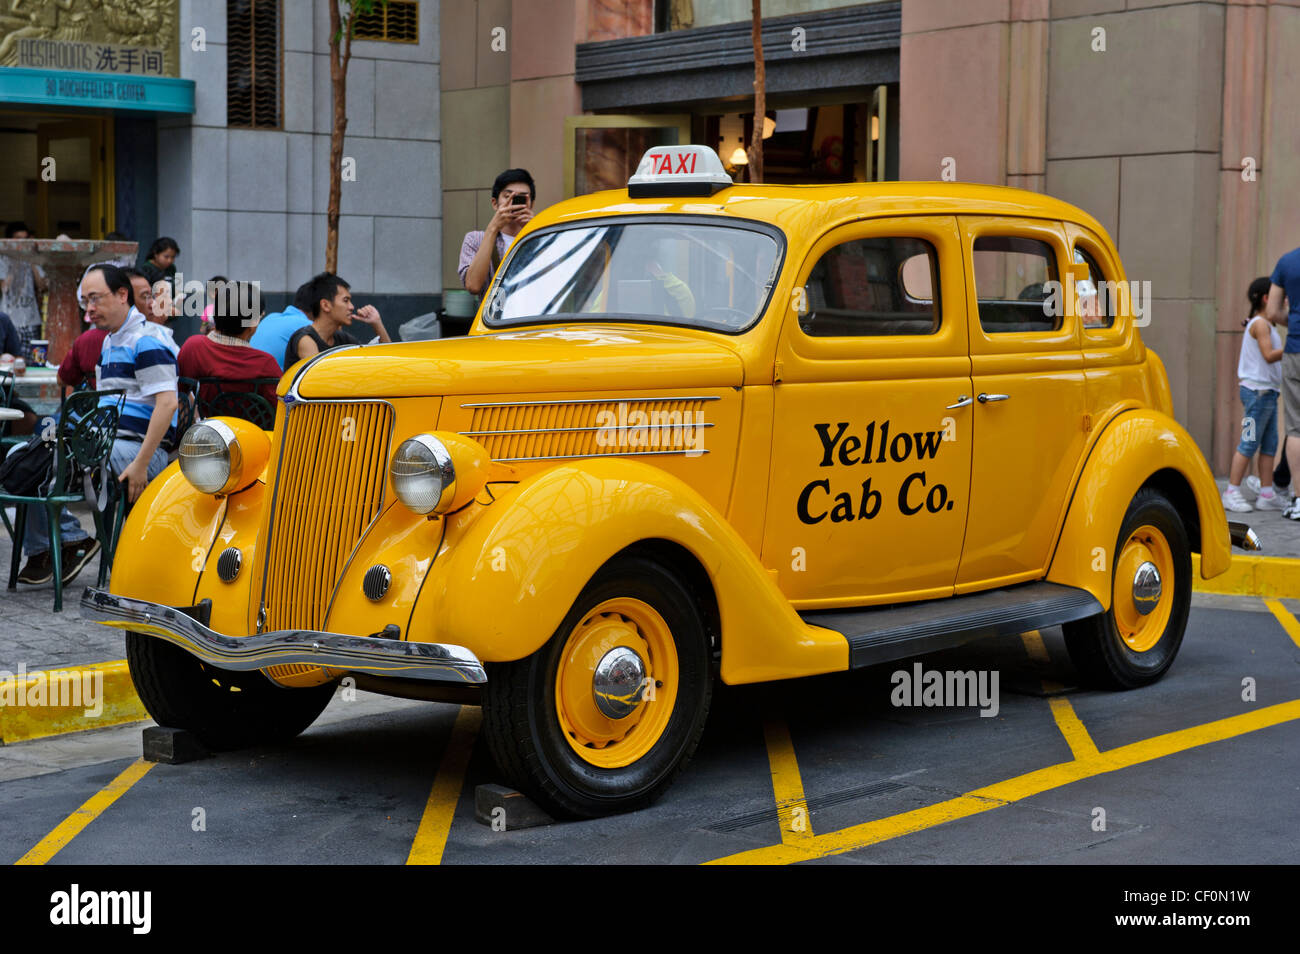 Yellow Cab Company, Universal Studios, Singapore Stock Photo